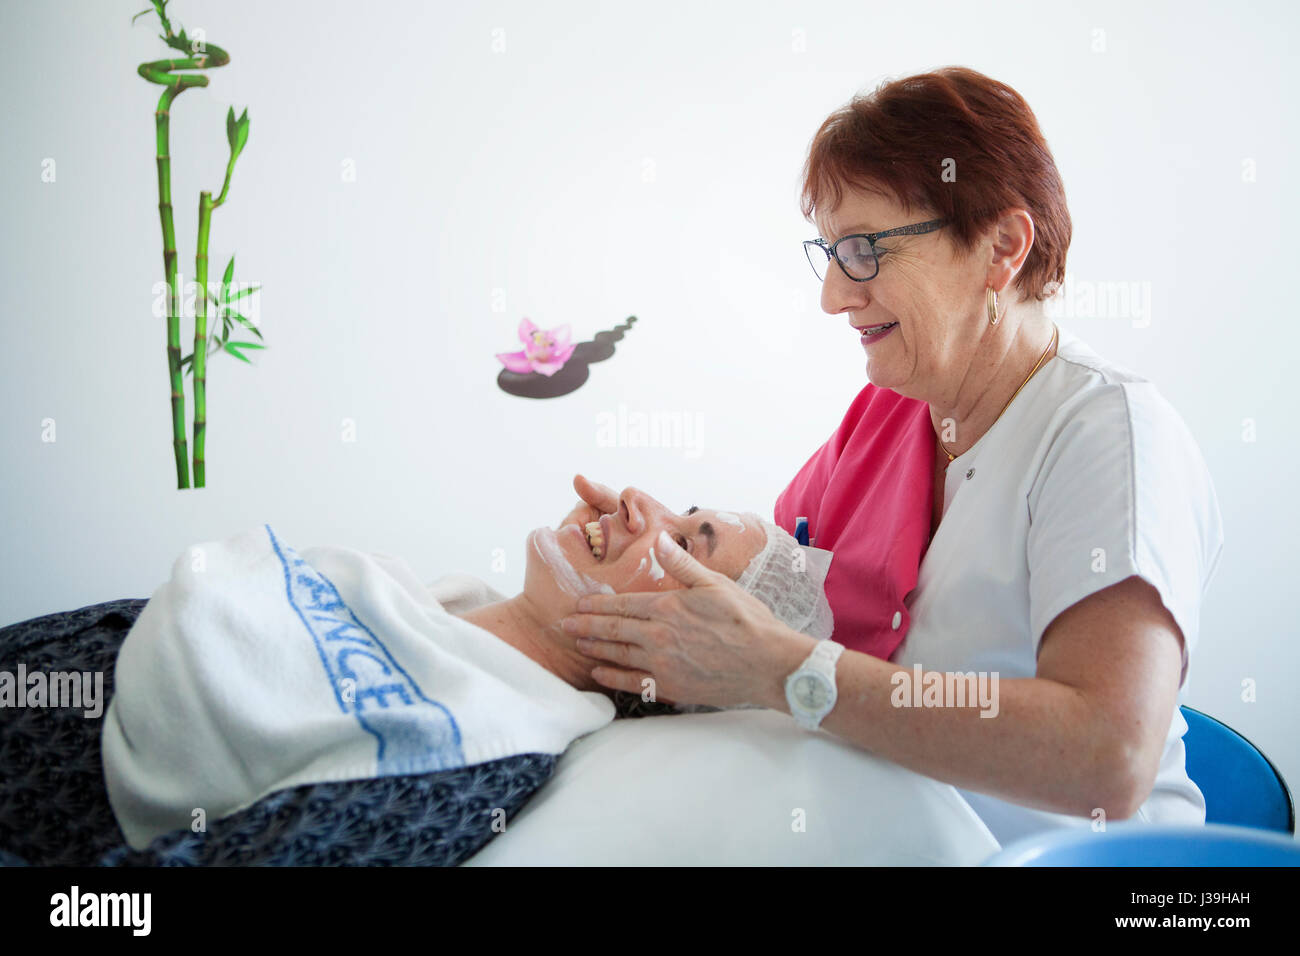 HOSPITAL BEAUTICIAN - Stock Image